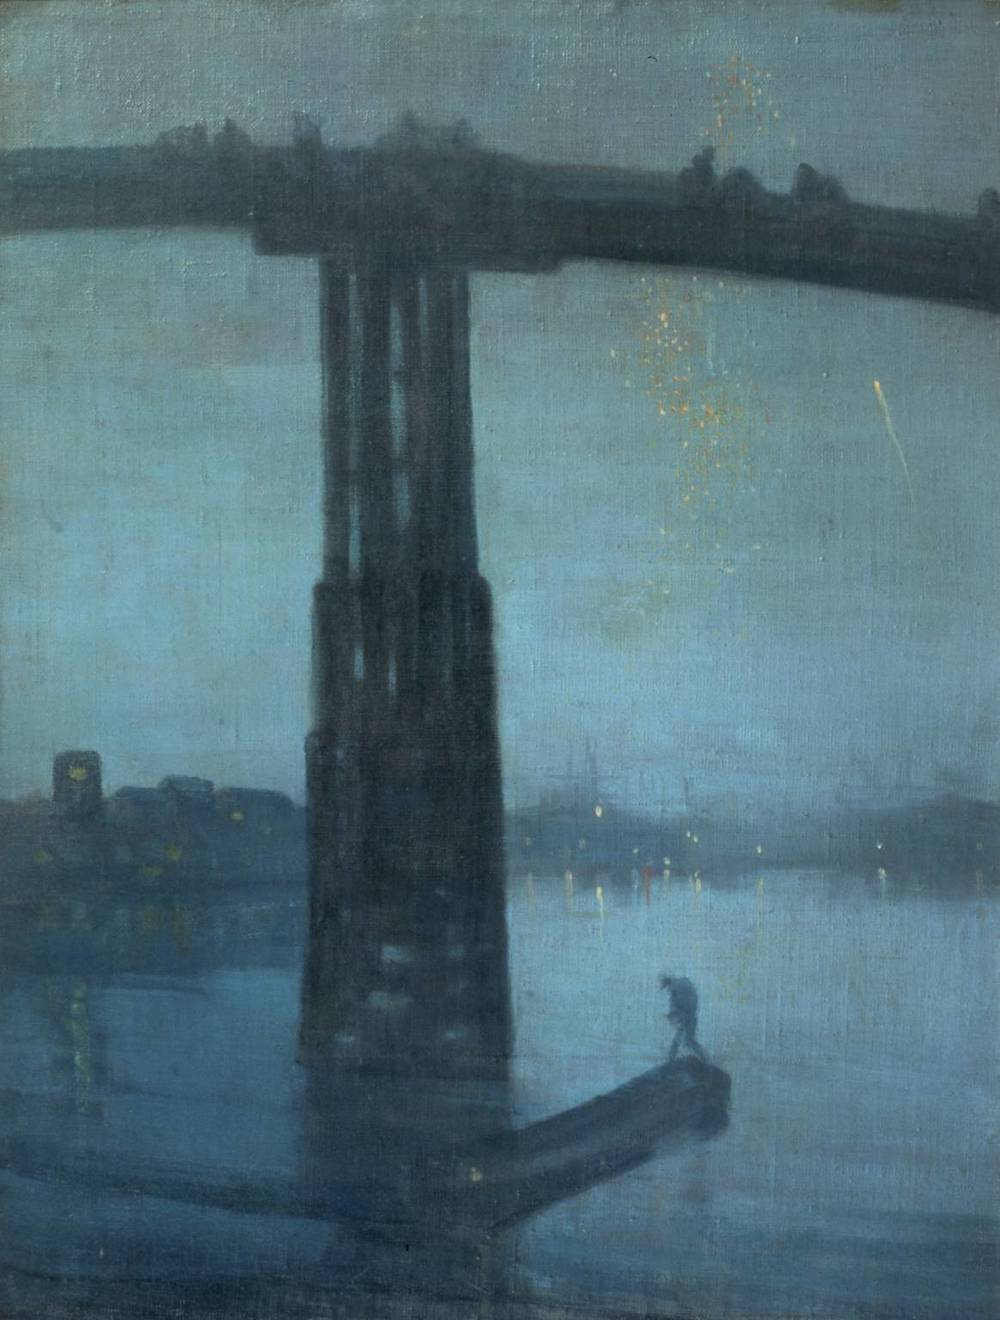 Nocturn en blau i argentat; antic pont de Battersea - James Abbott McNeill Whistler